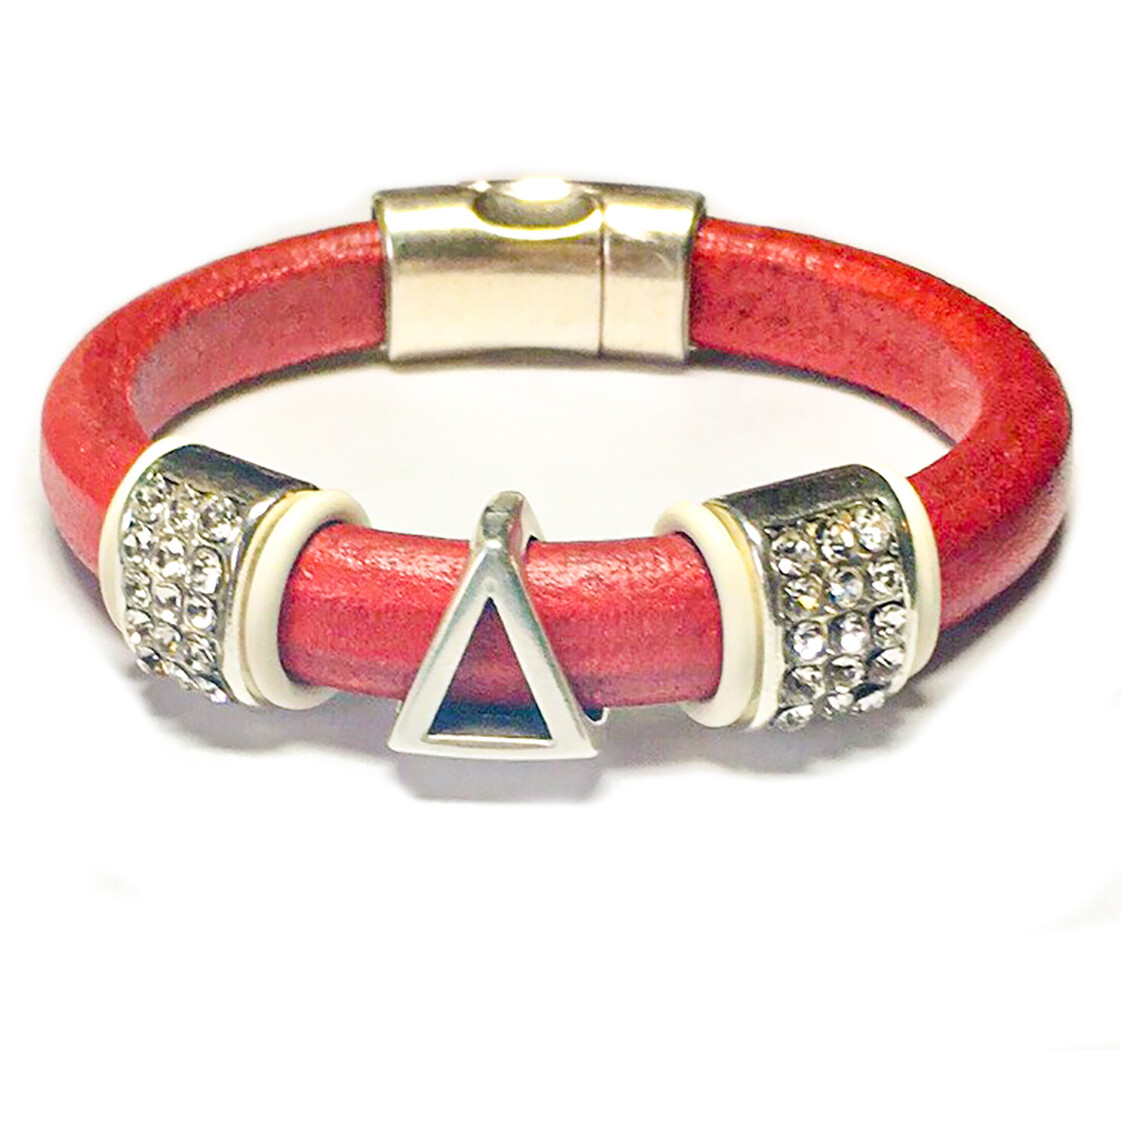 Bracelet | Red Leather Pyramid Symbol With Bling Classy Creations Originals